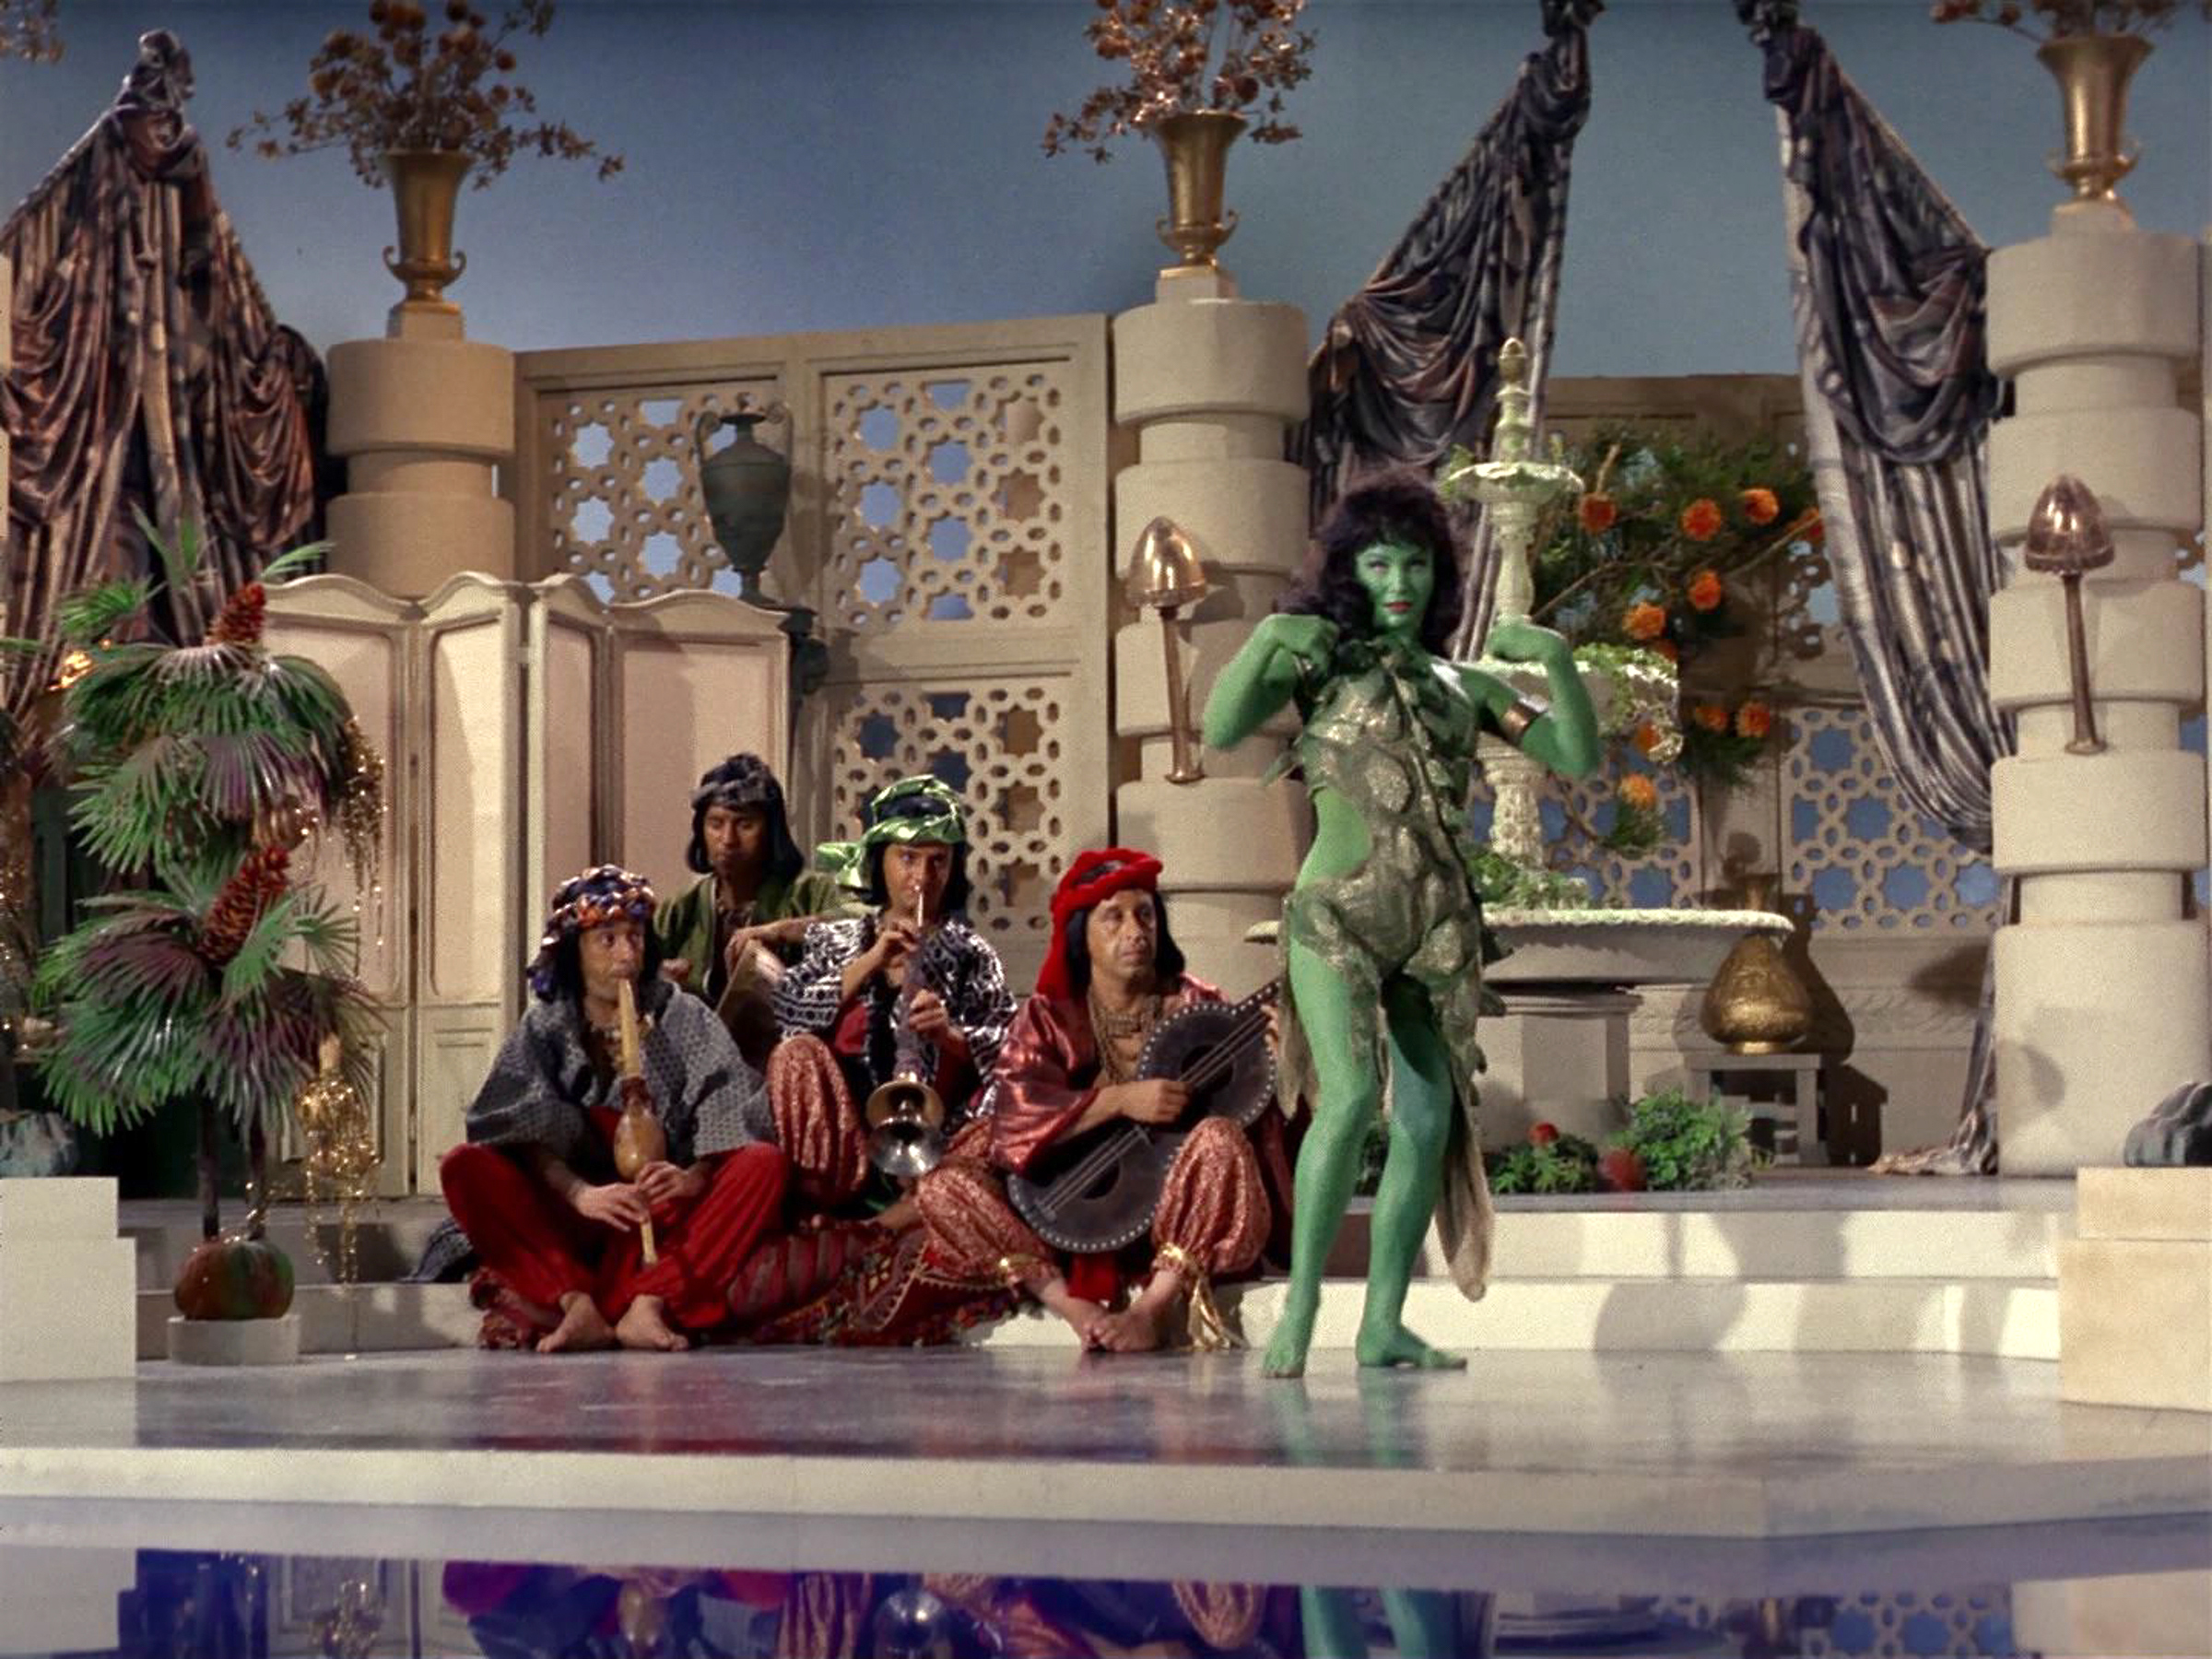 Susan Oliver as Vina appearing as an Orion slave girl.